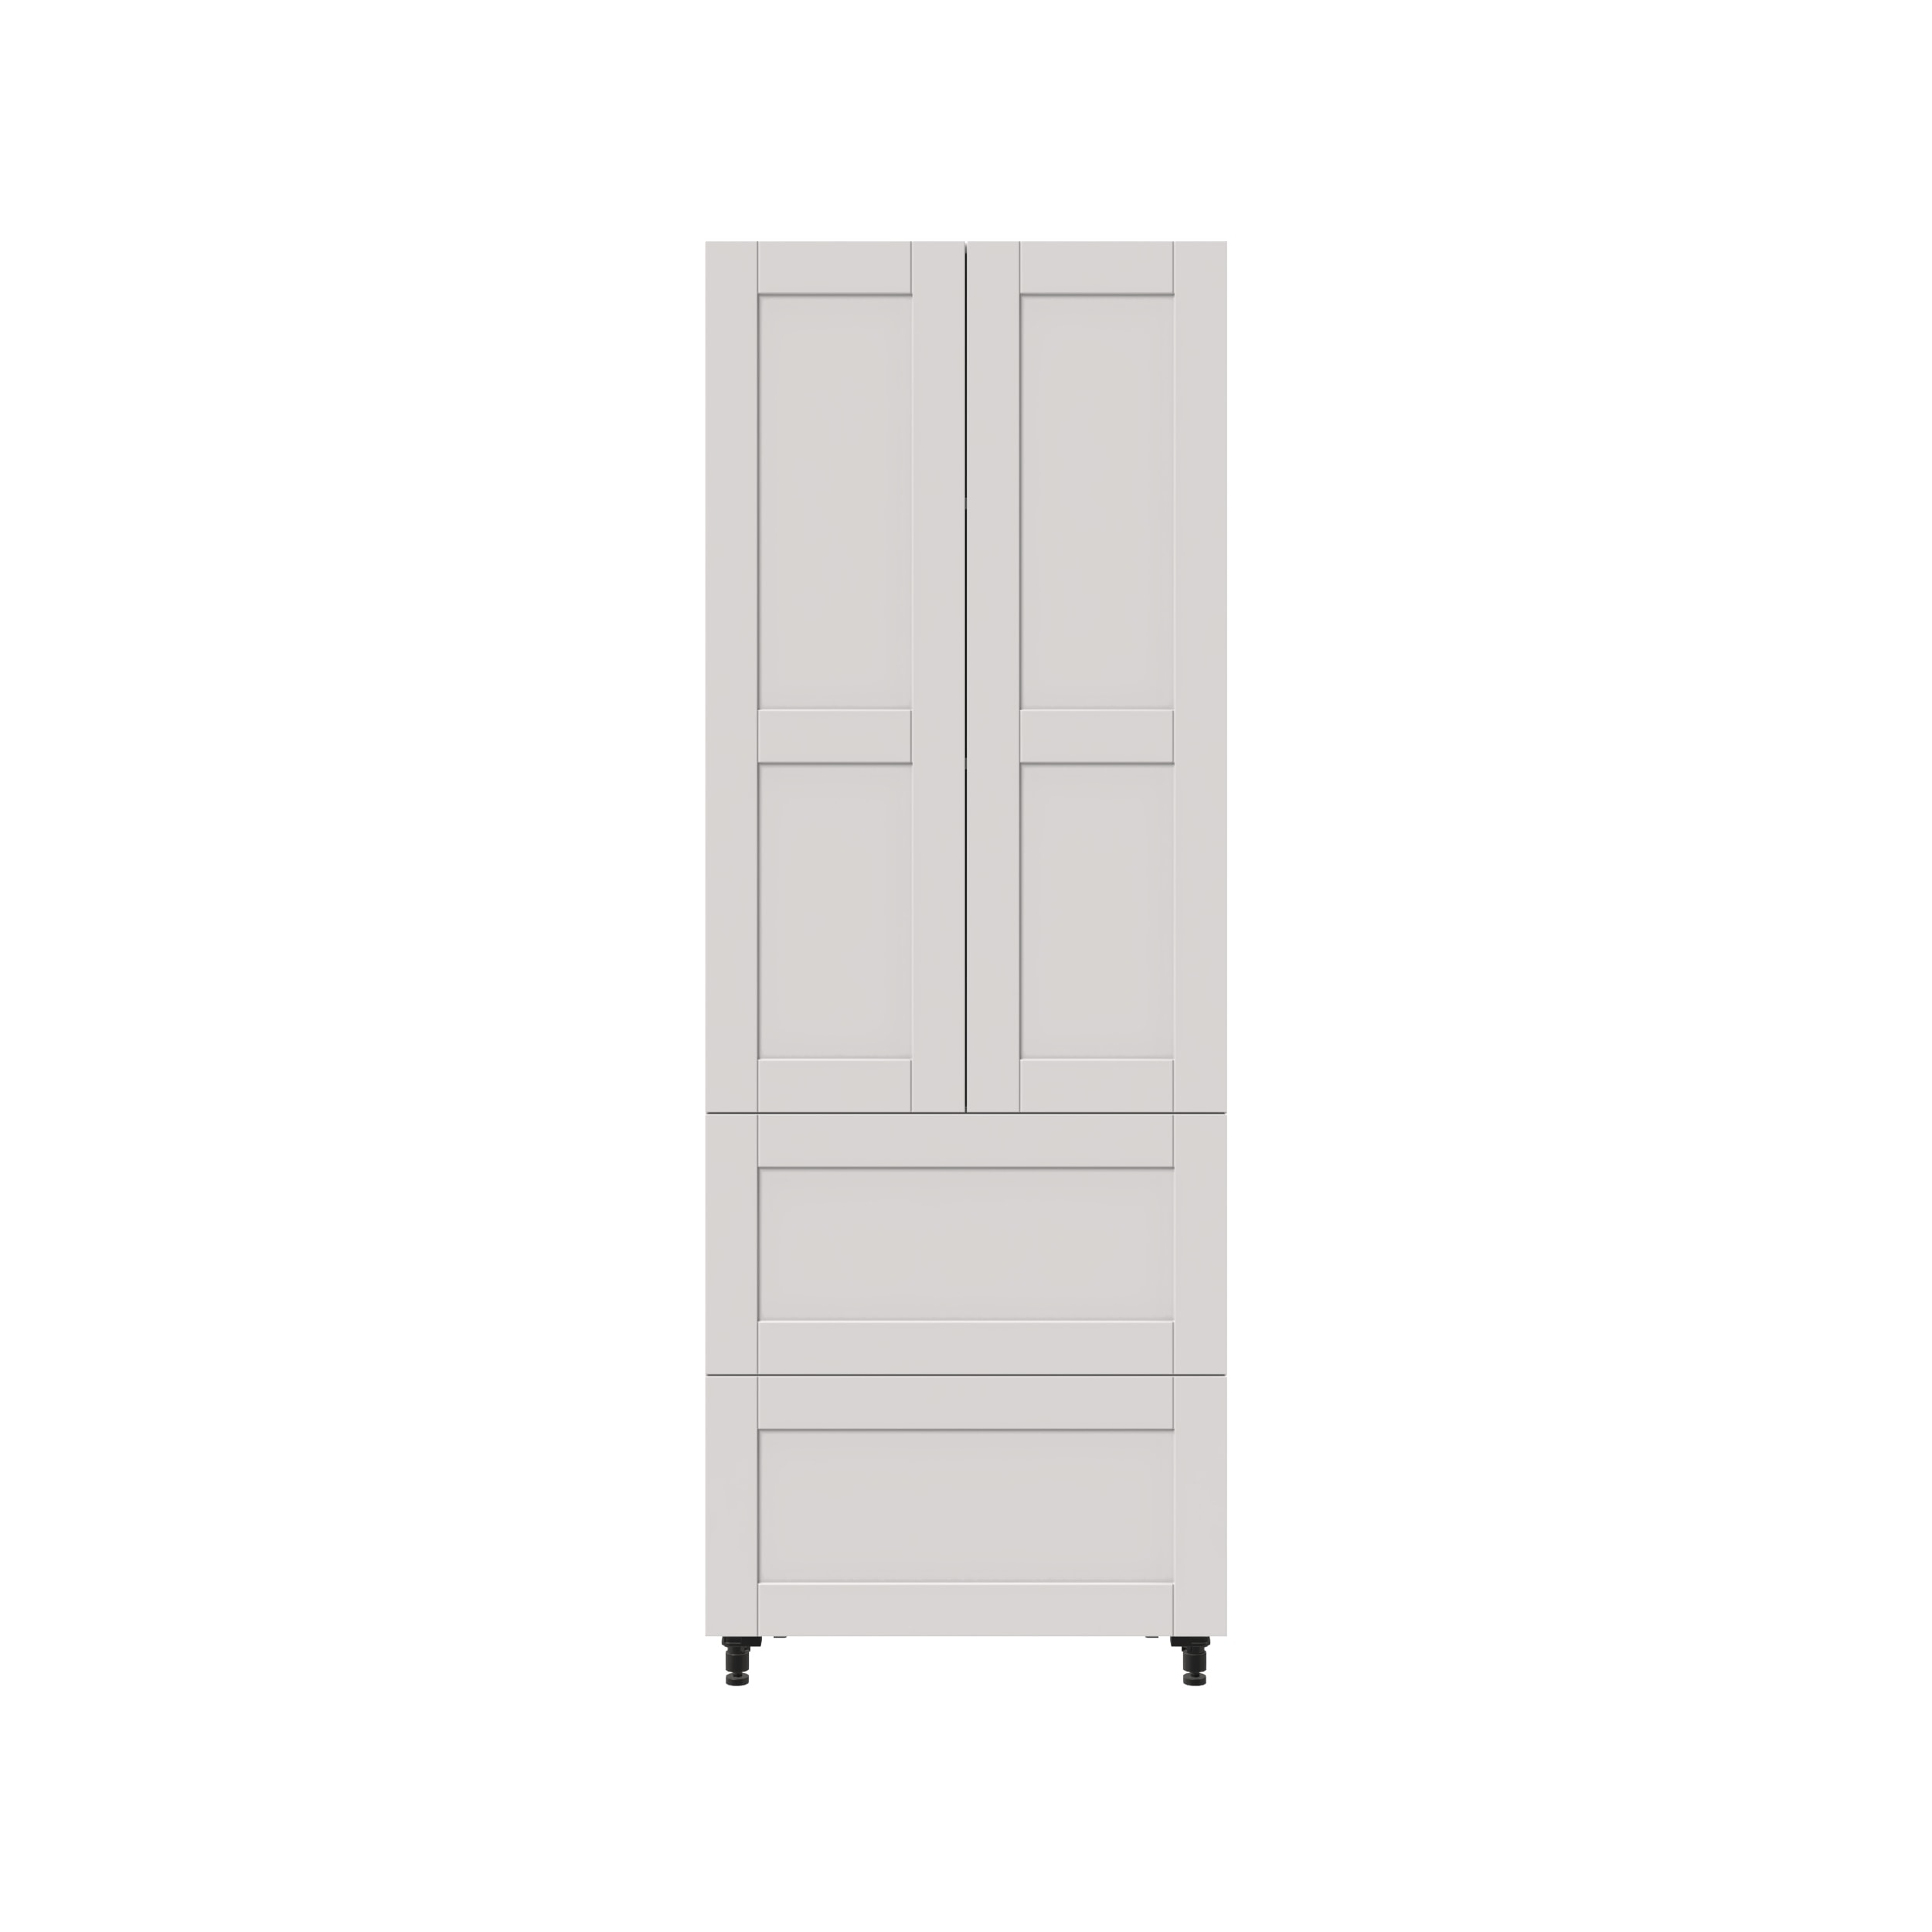 30 Tall Cabinet With 2 Doors 2 Drawers And 2 Interior